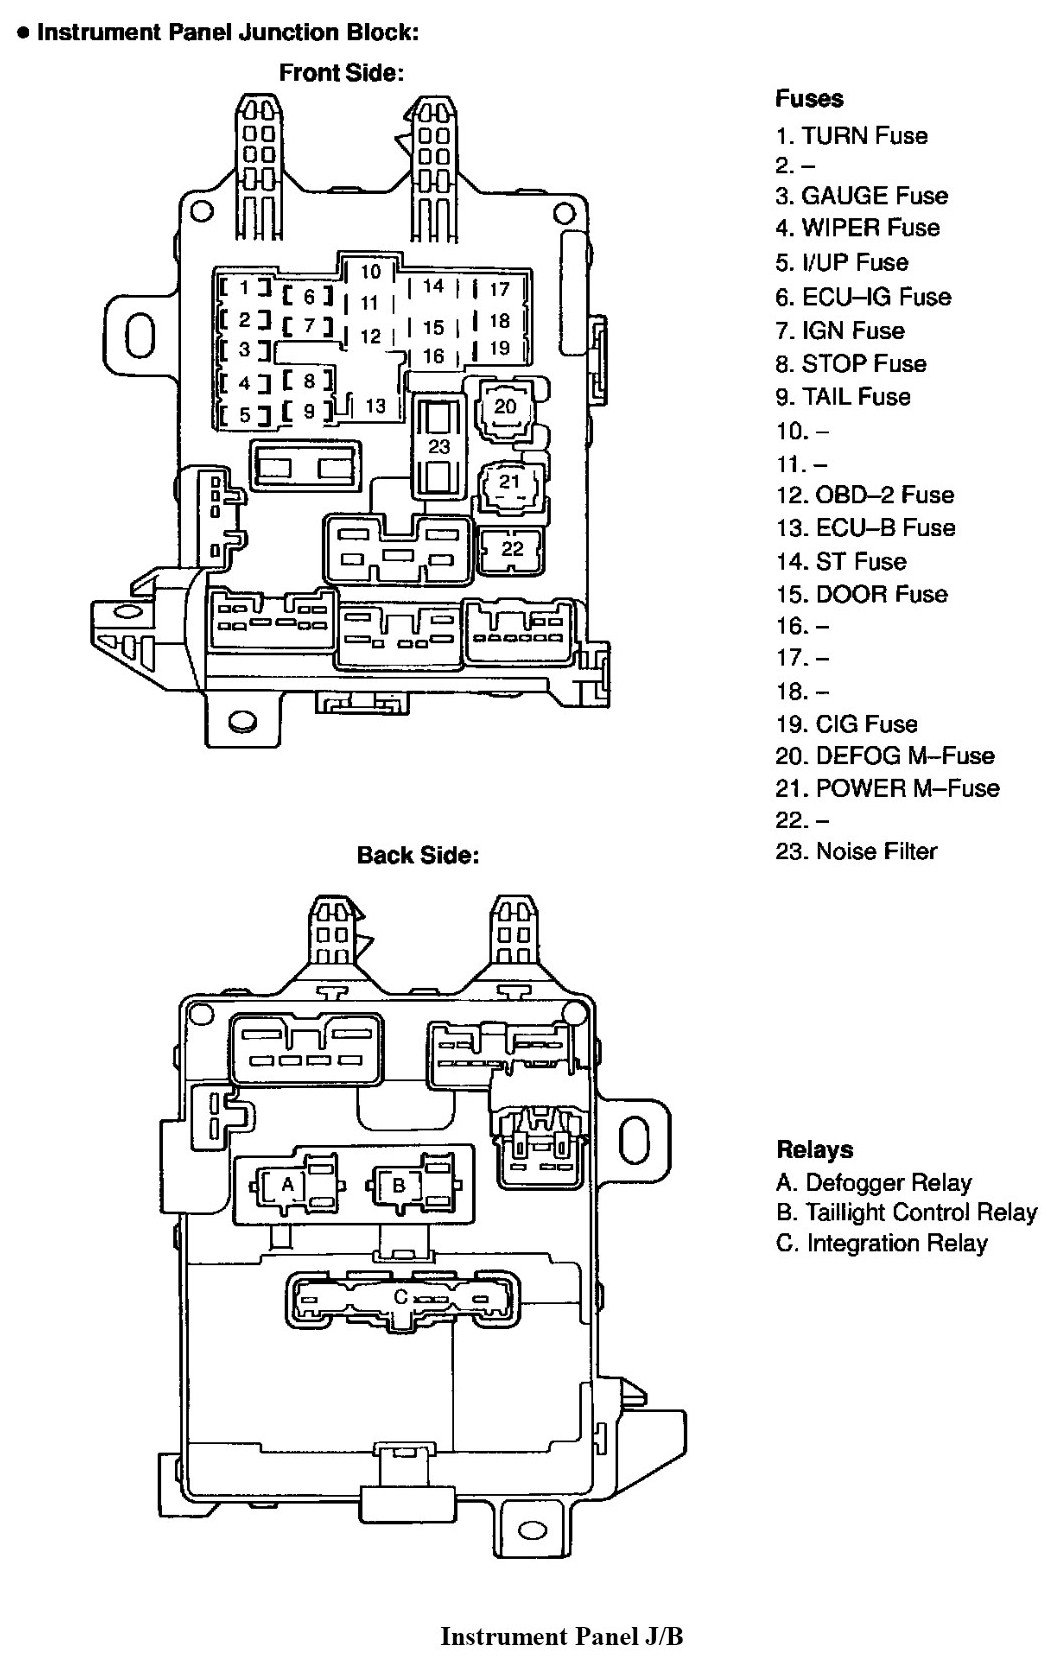 Fuse Box Diagram Of A 2006 Toyota Corolla S Wiring Library Yaris 2002 2010 Schematics